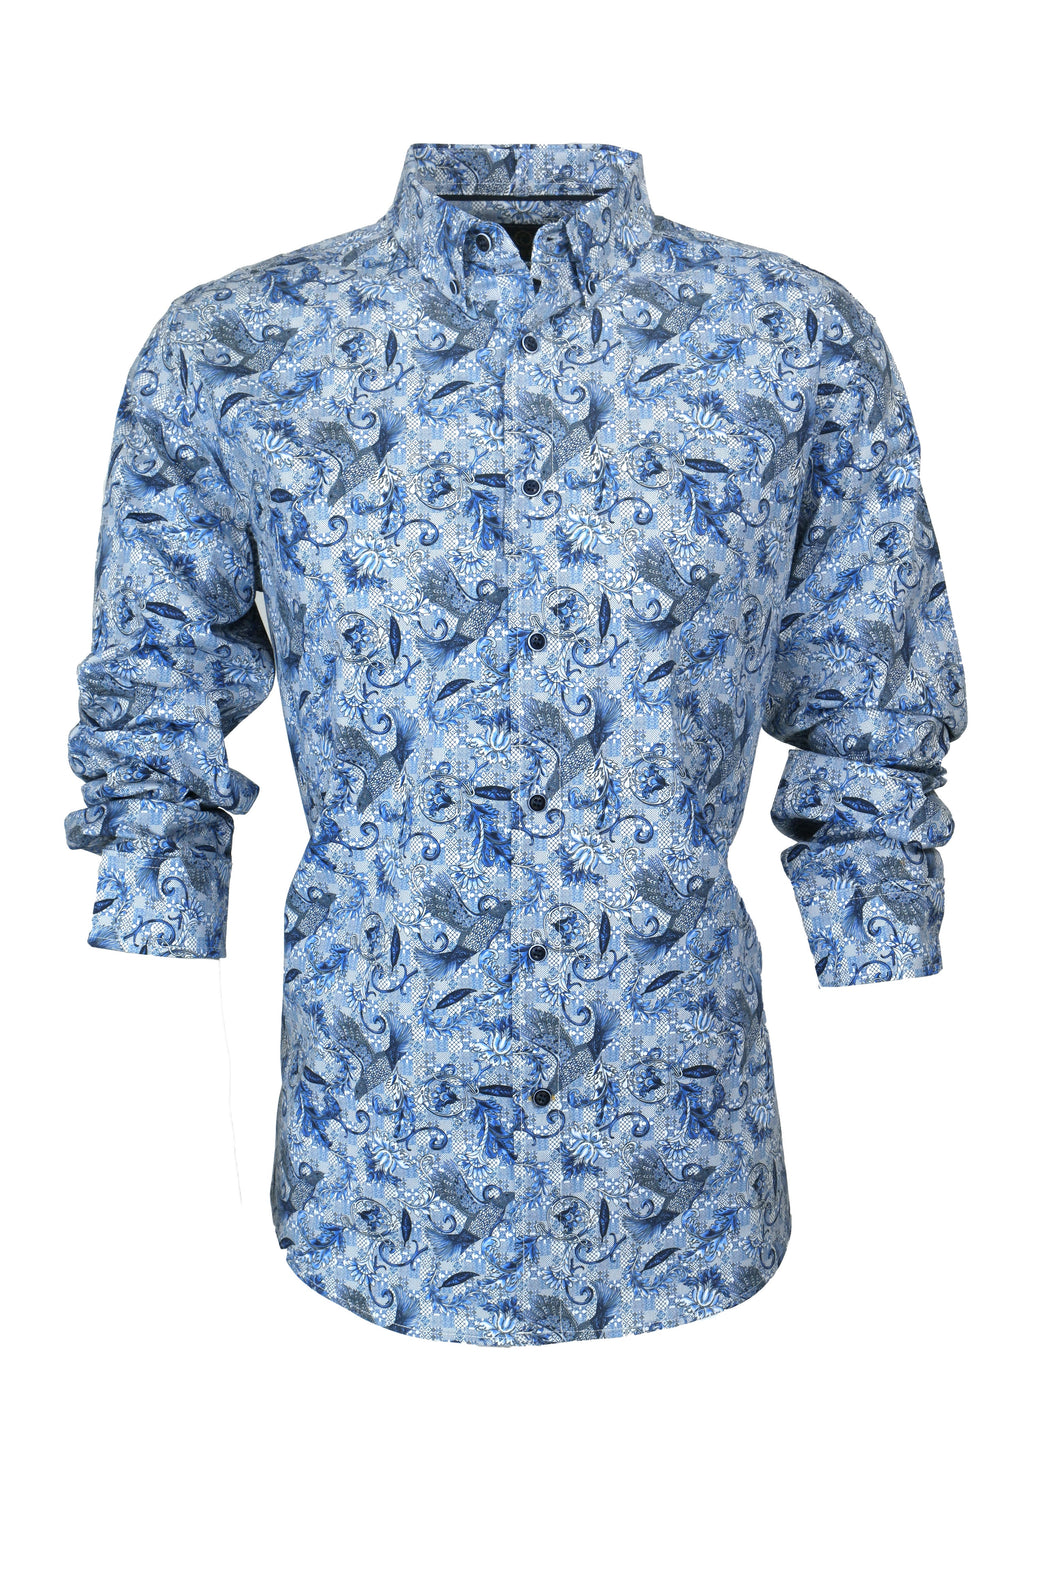 Cutler & Co Blake L/S Shirt - Angel Blue